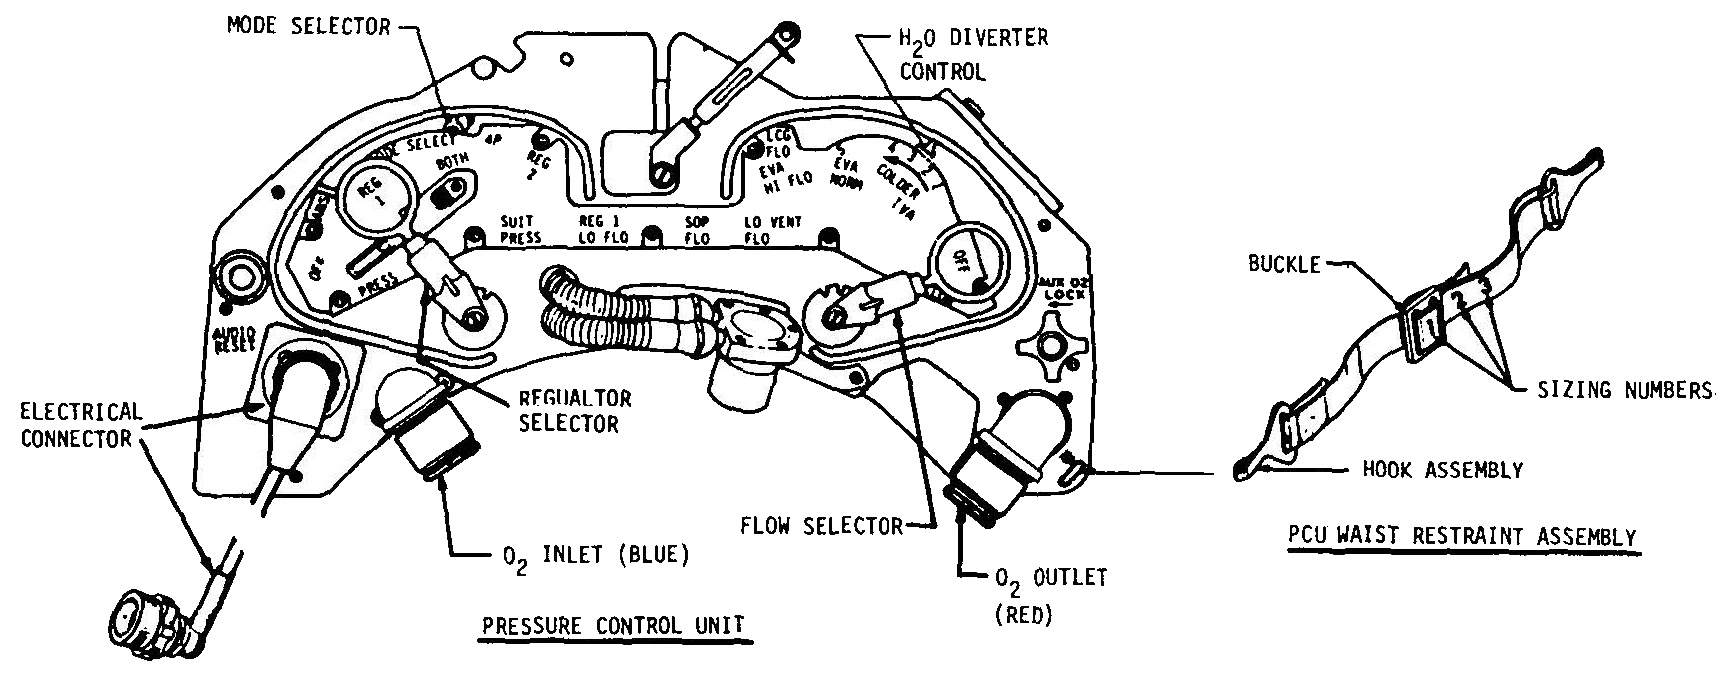 hight resolution of skylab emu space suit pcu pressure control unit